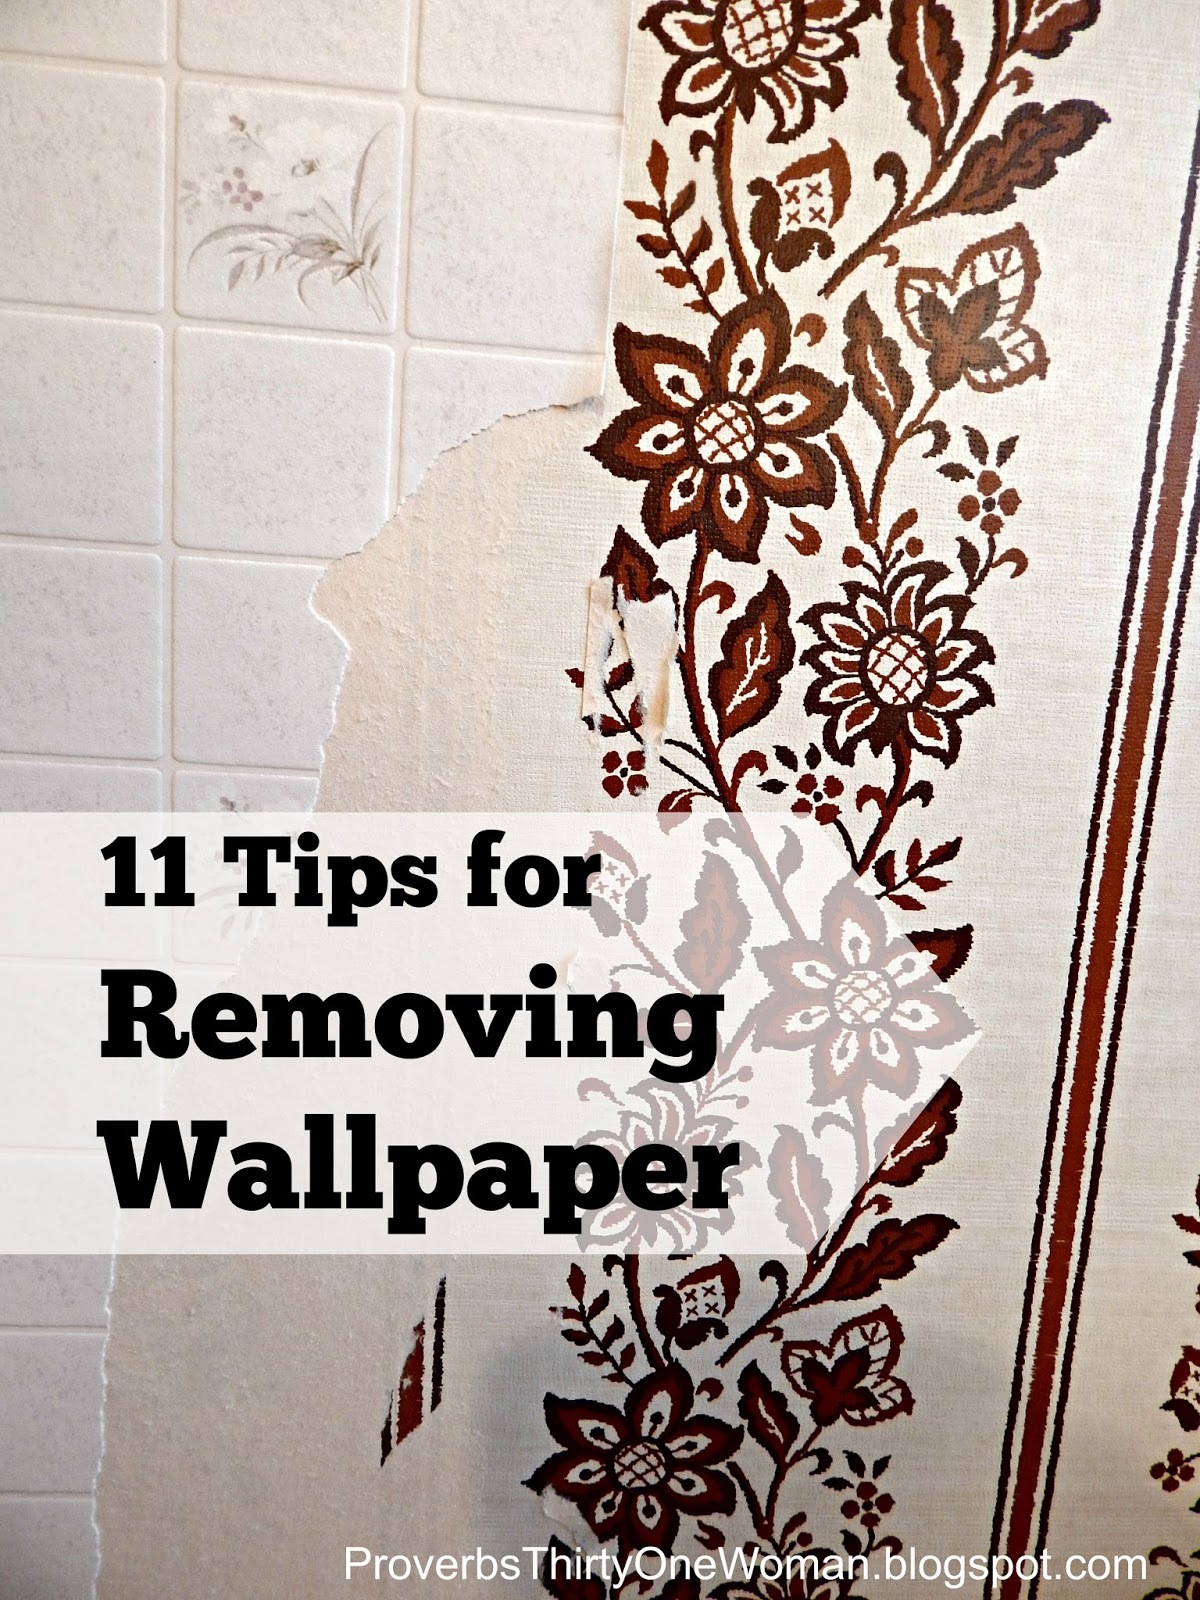 Proverbs 31 woman for What do you use to remove wallpaper